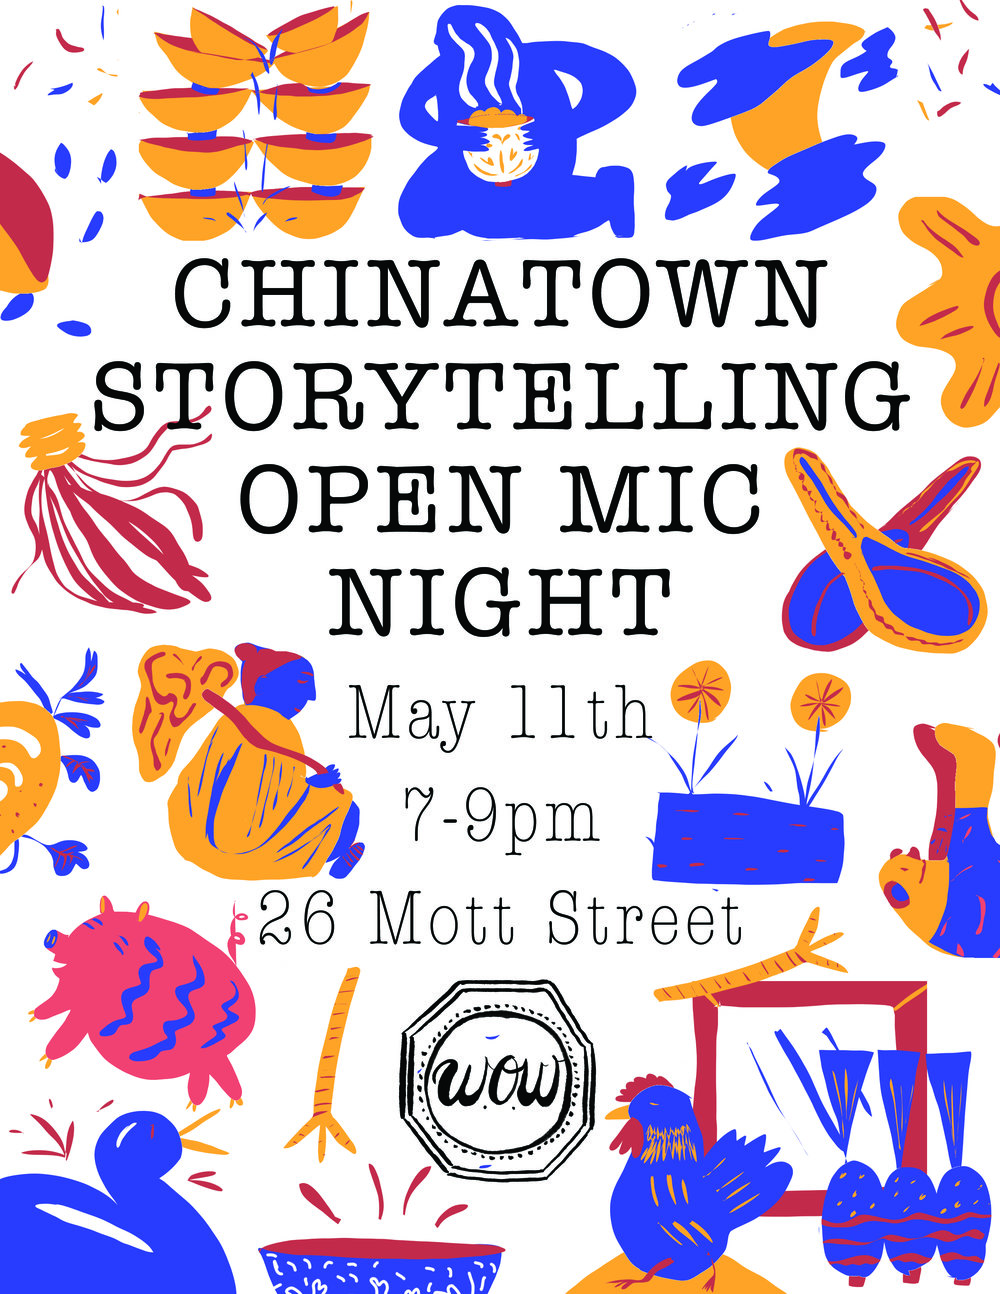 chinatown storytelling open mic night.jpg